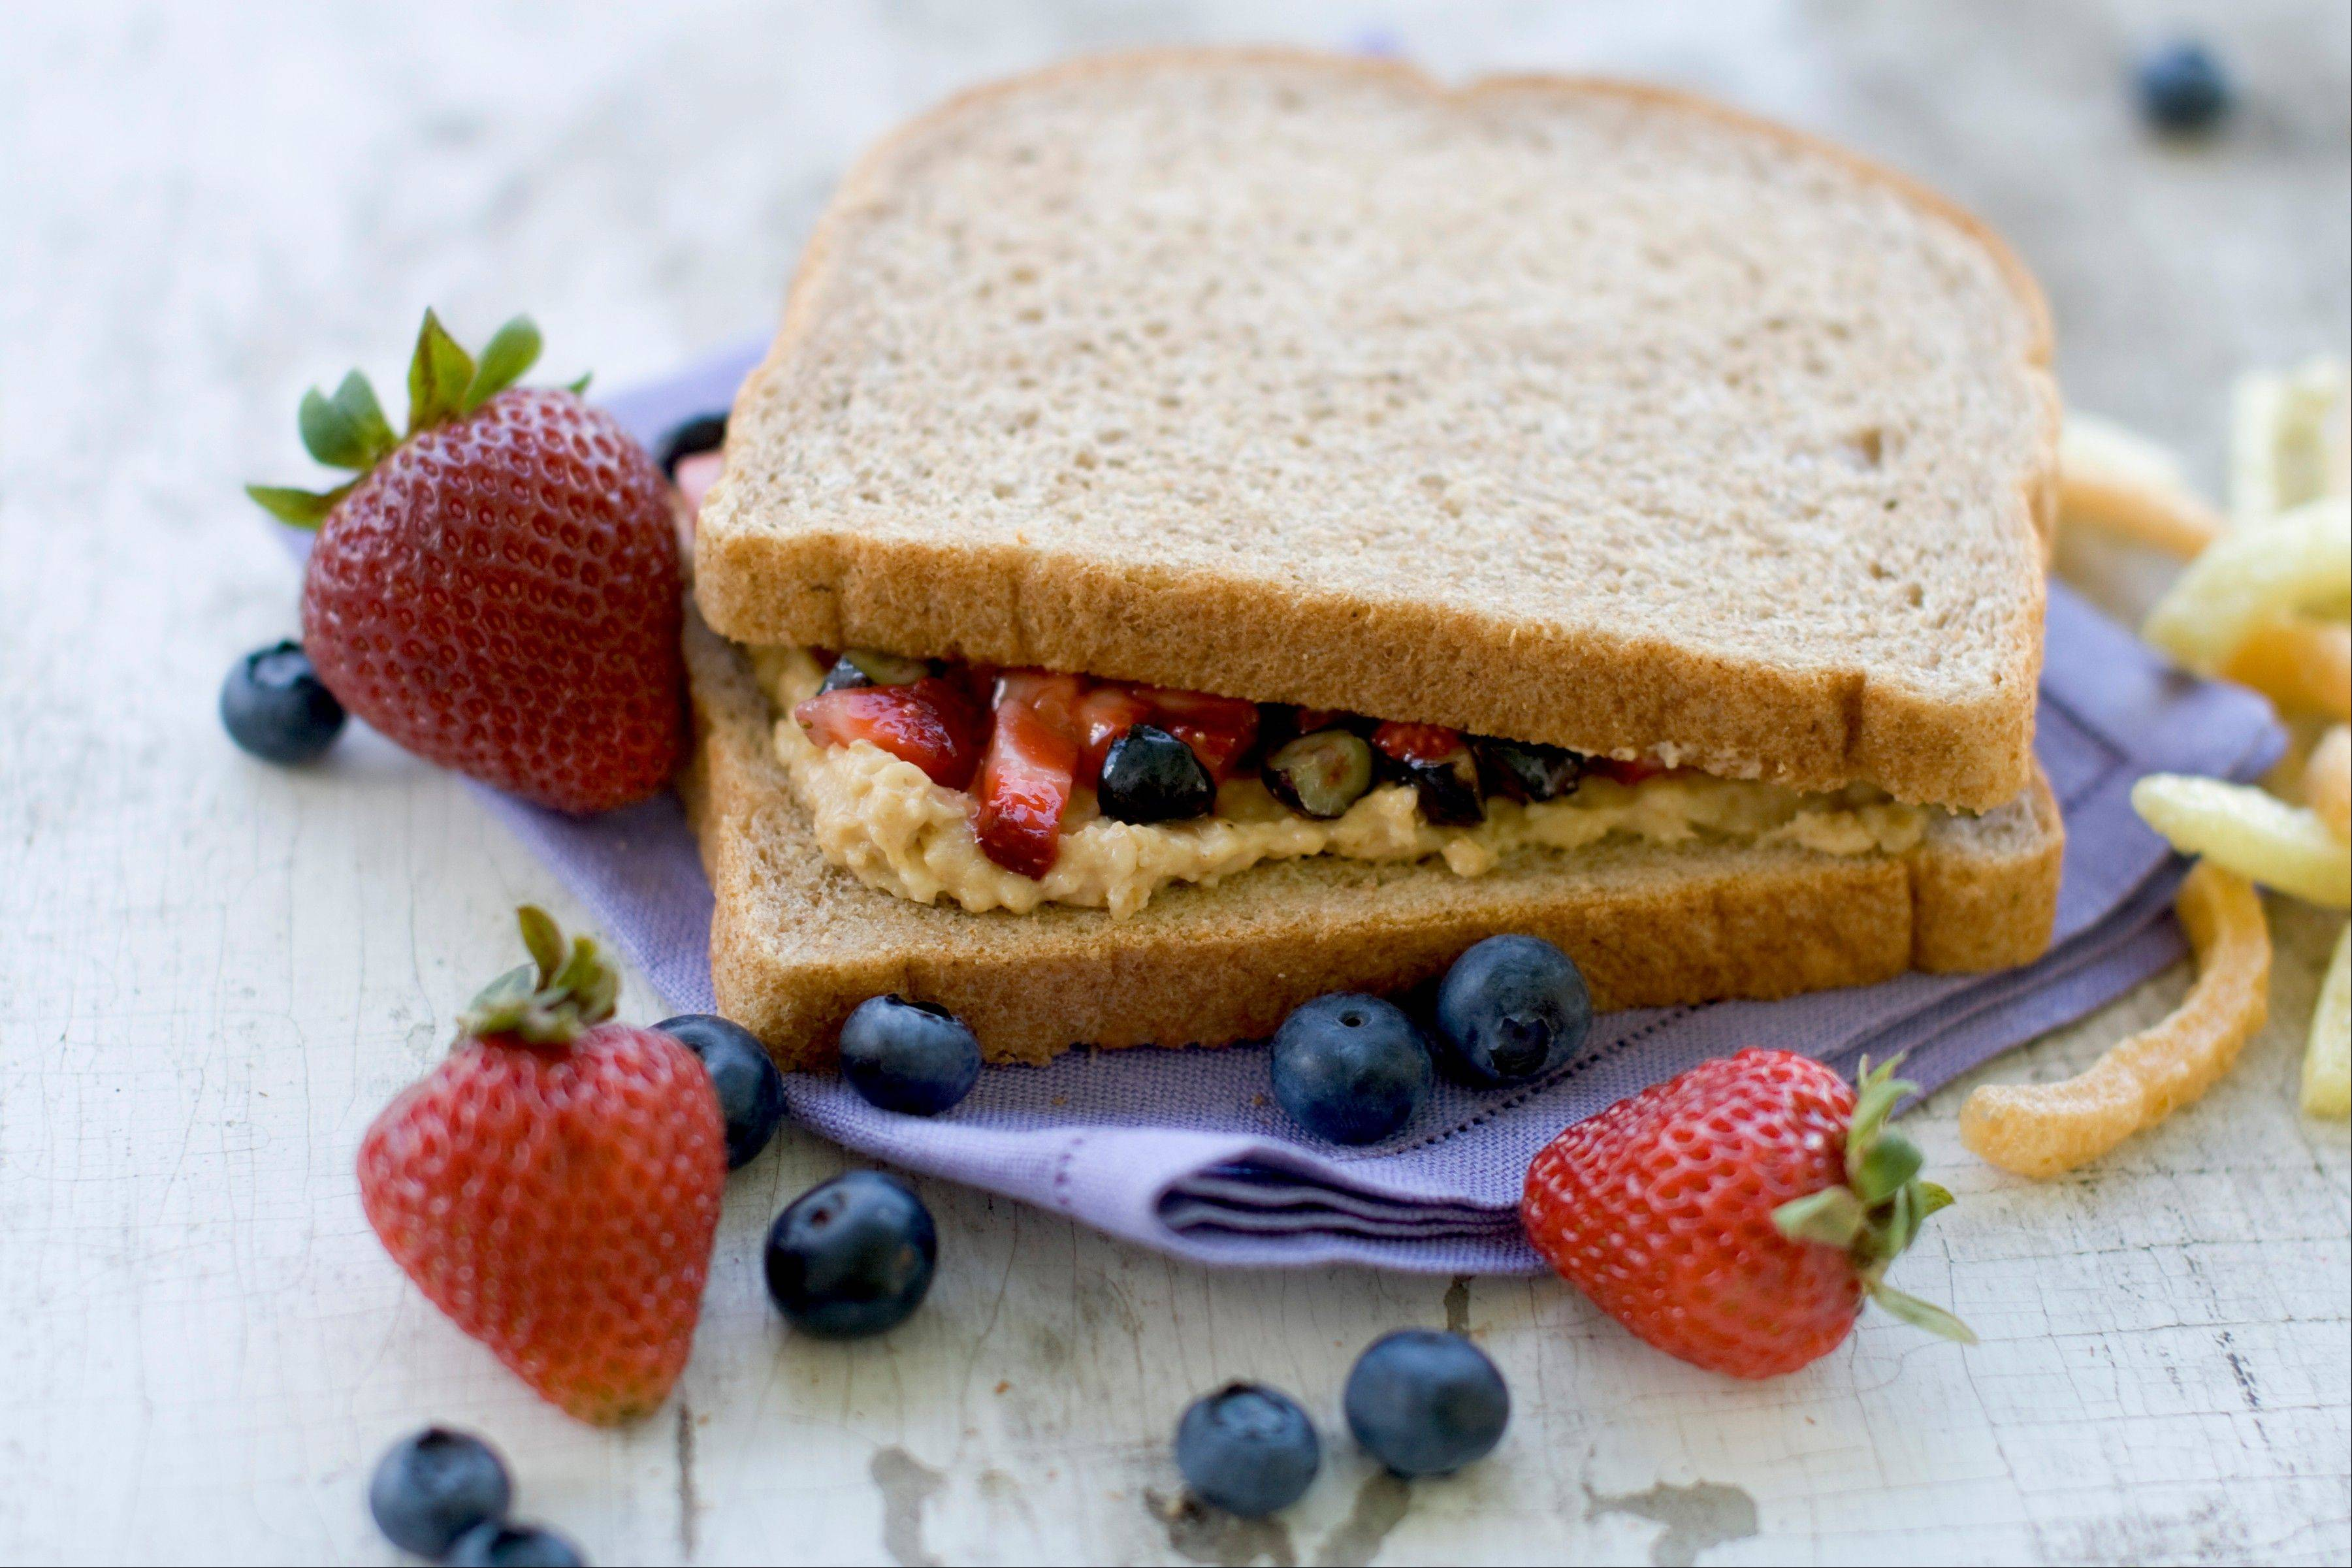 A healthy remake of a PB&J sandwich can include fresh berries or a natural fruit spread.